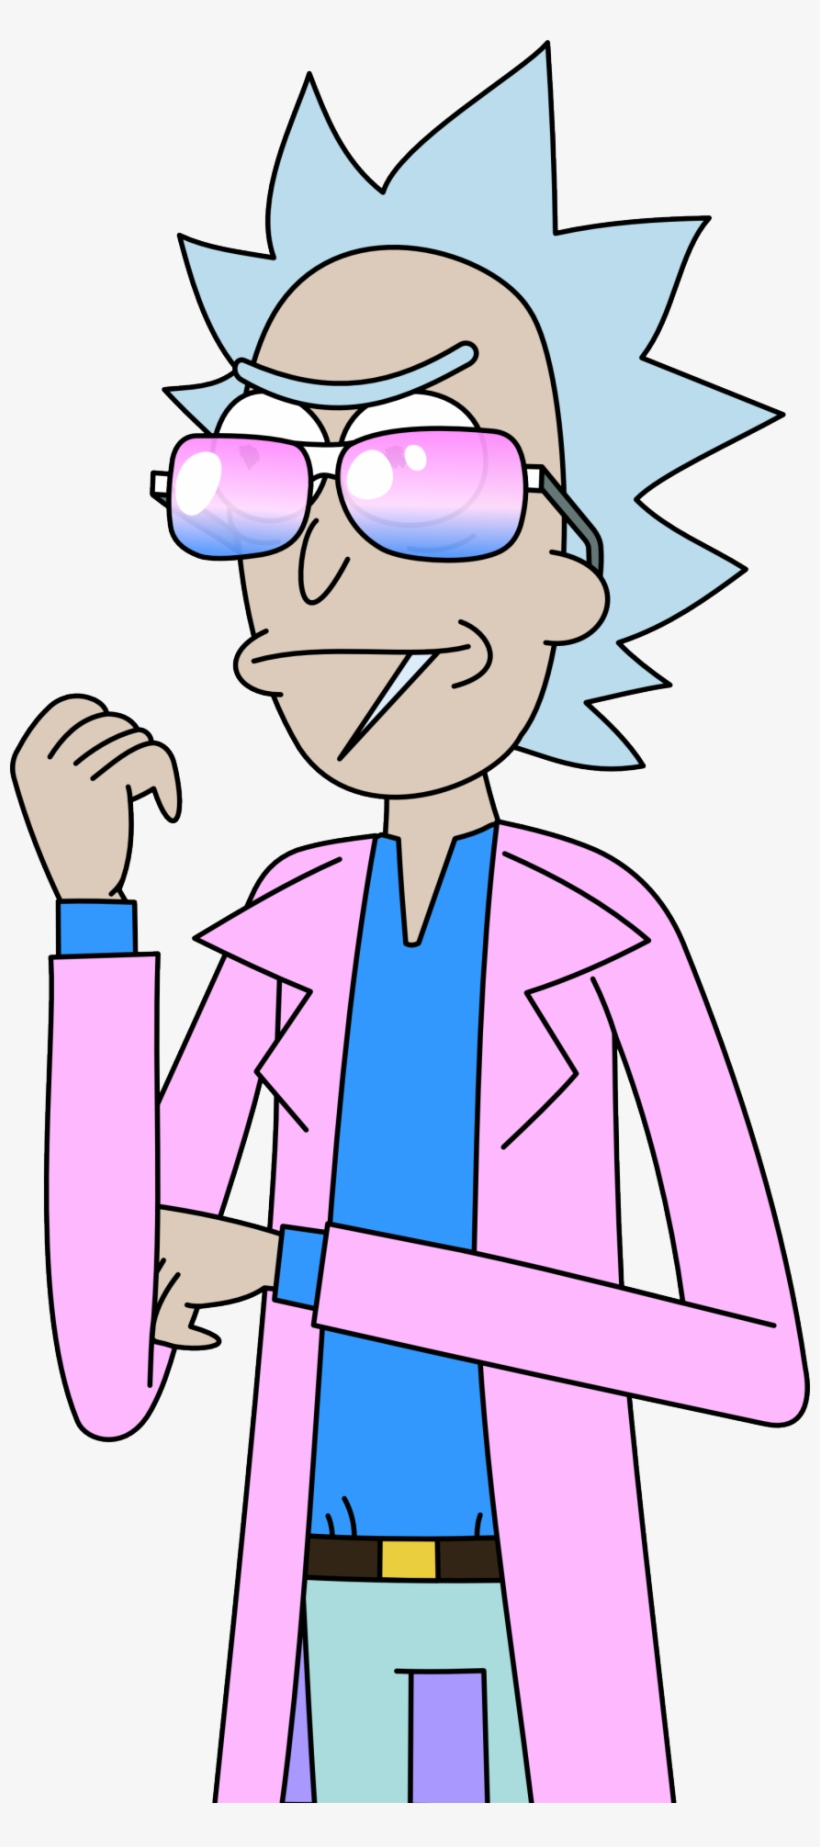 Miami Rick Transparent Vector By Steel-scorpion @ Tumblr - Rick And Morty Miami Rick, transparent png #3954619